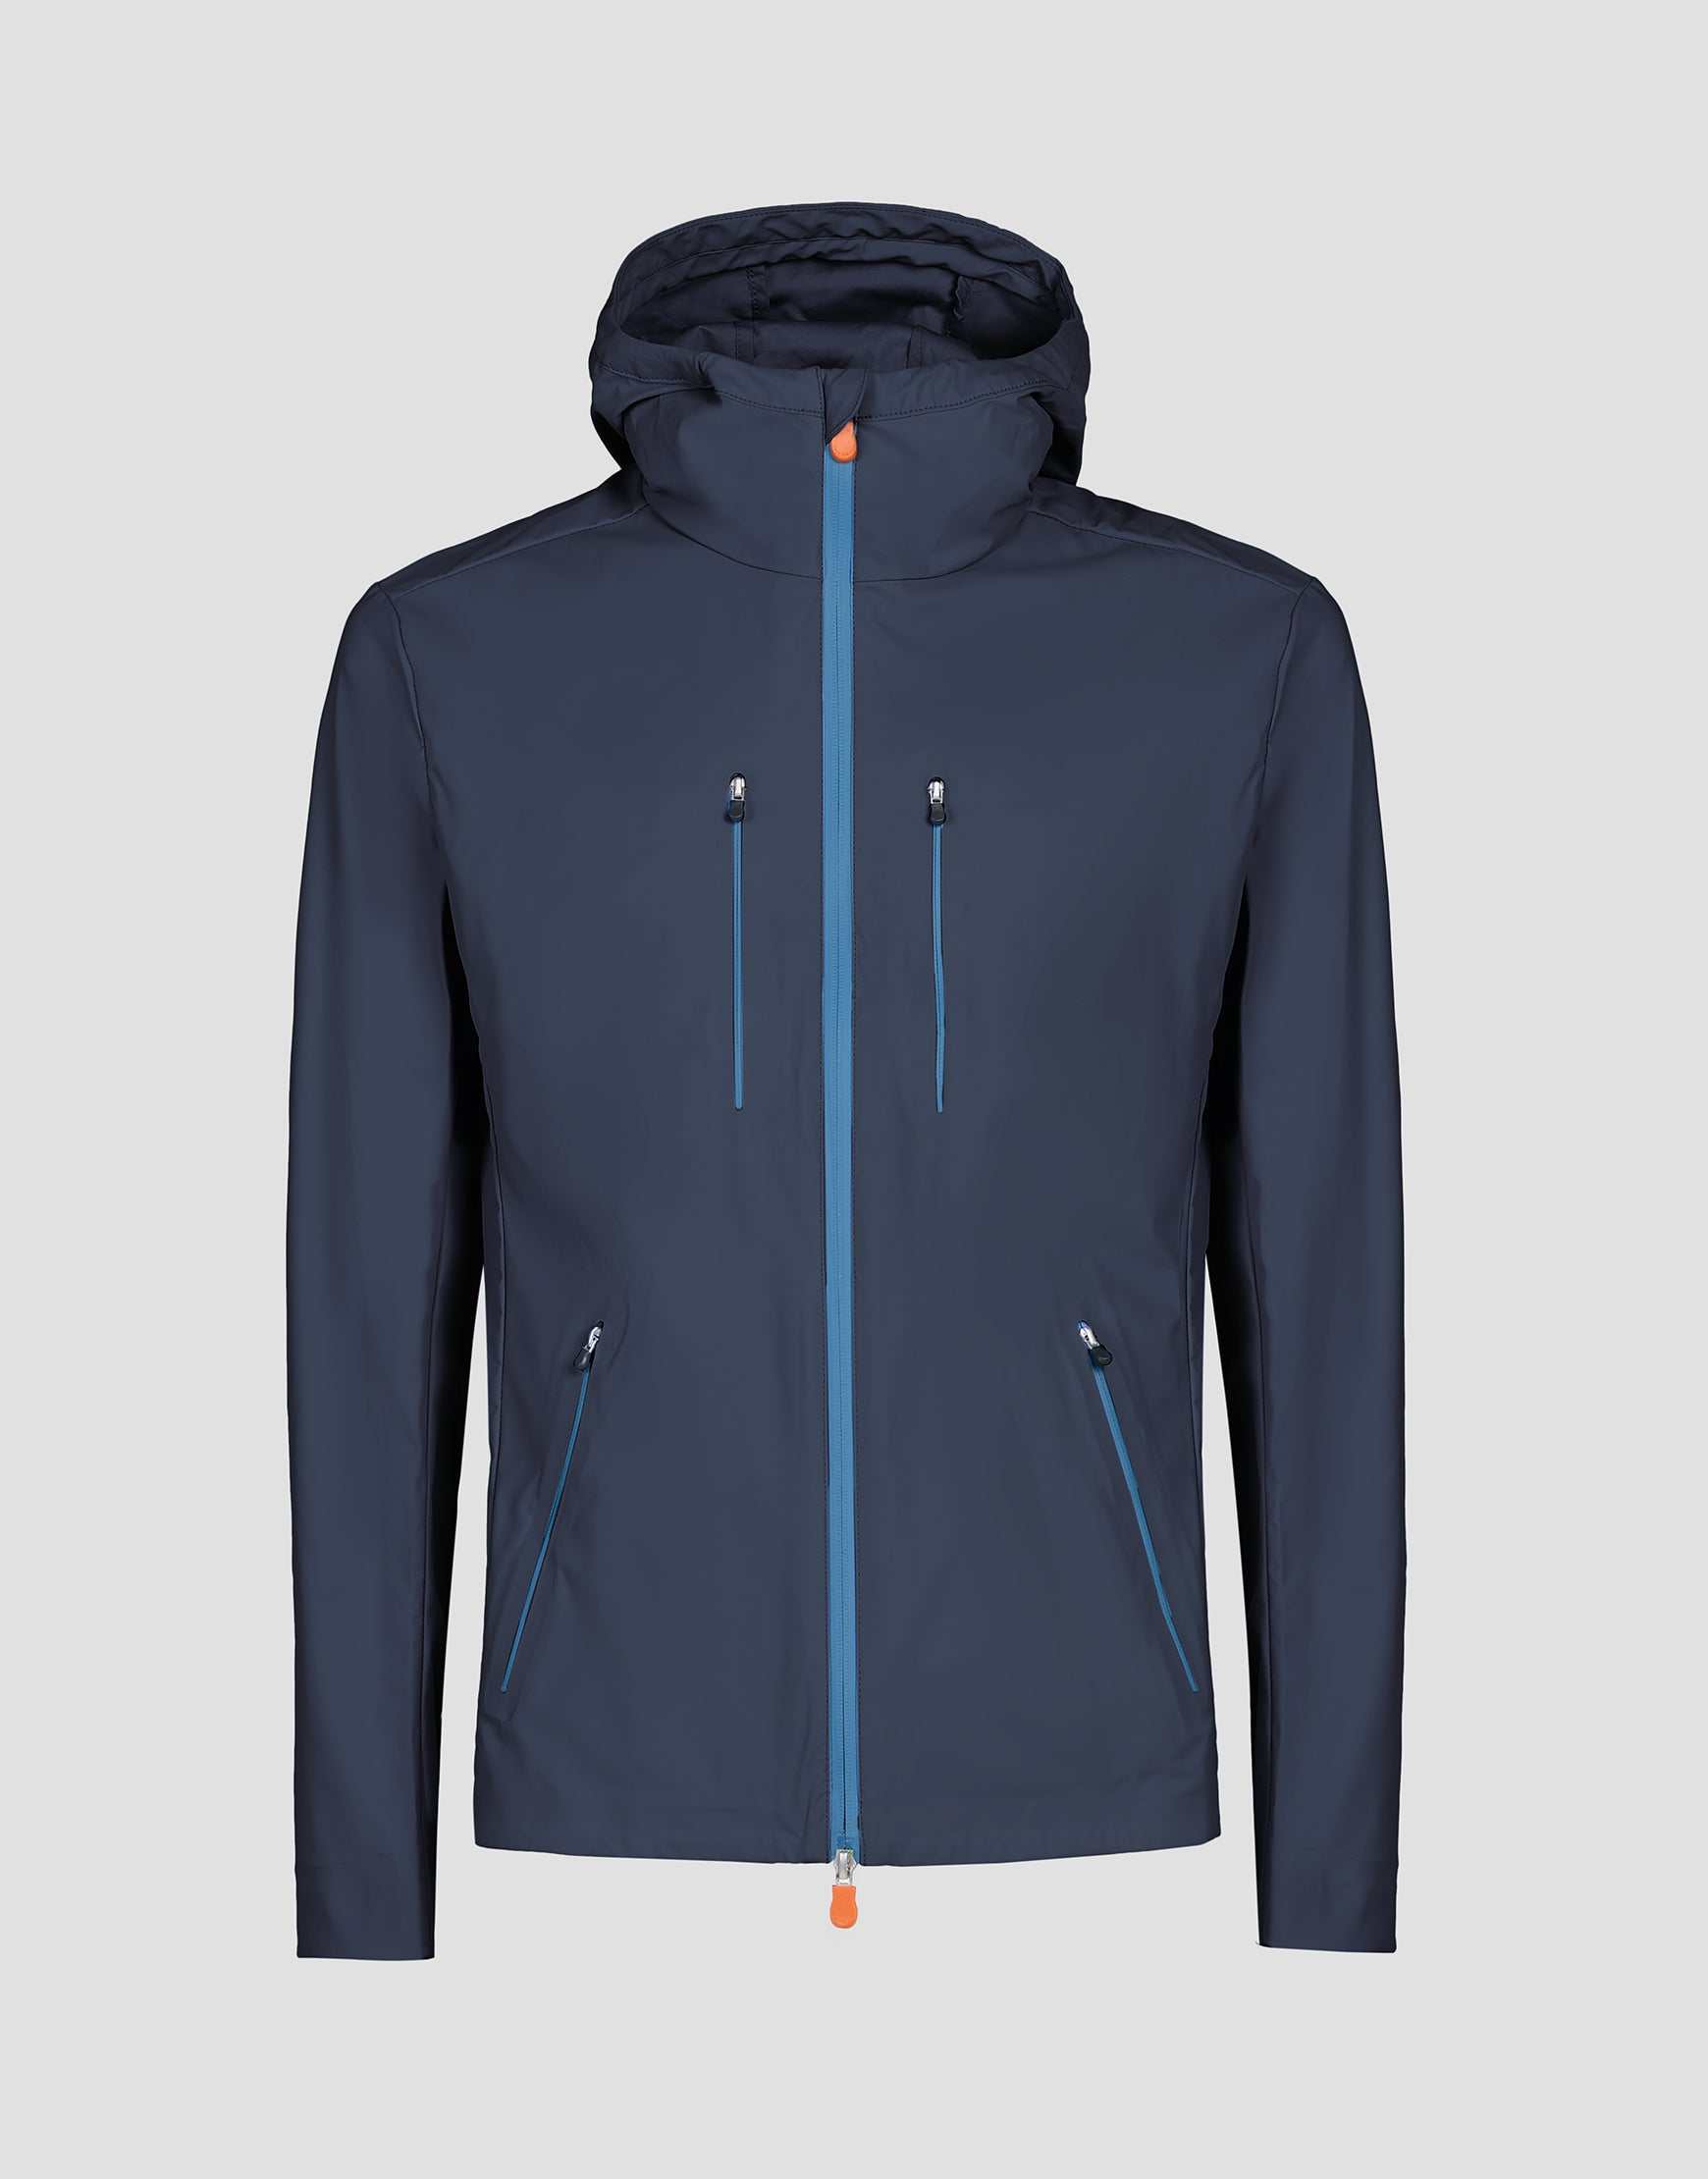 Save The Duck Mens Jacket - Save the Duck e8b2cc1b3